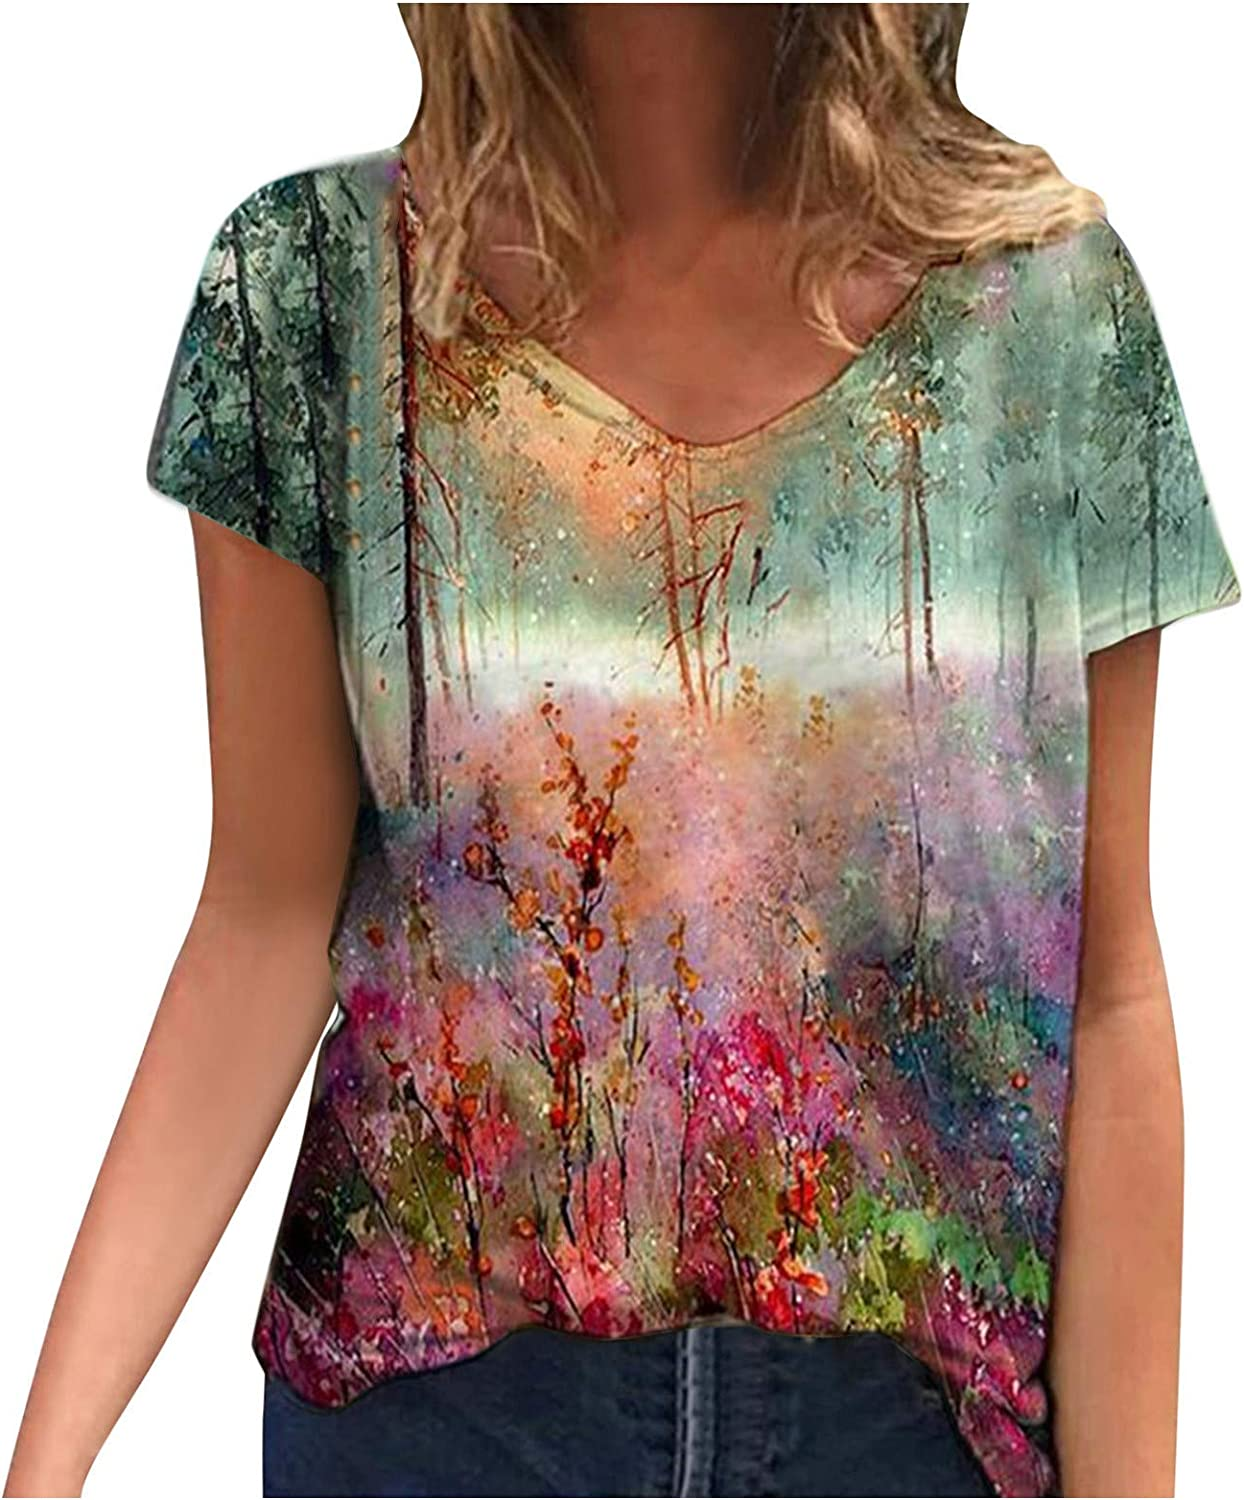 FABIURT Women Short Sleeve Tops,Womens Vintage Floral Printed V Neck T Shirts Summer Casual Loose Tee Blouse Tunic Tops